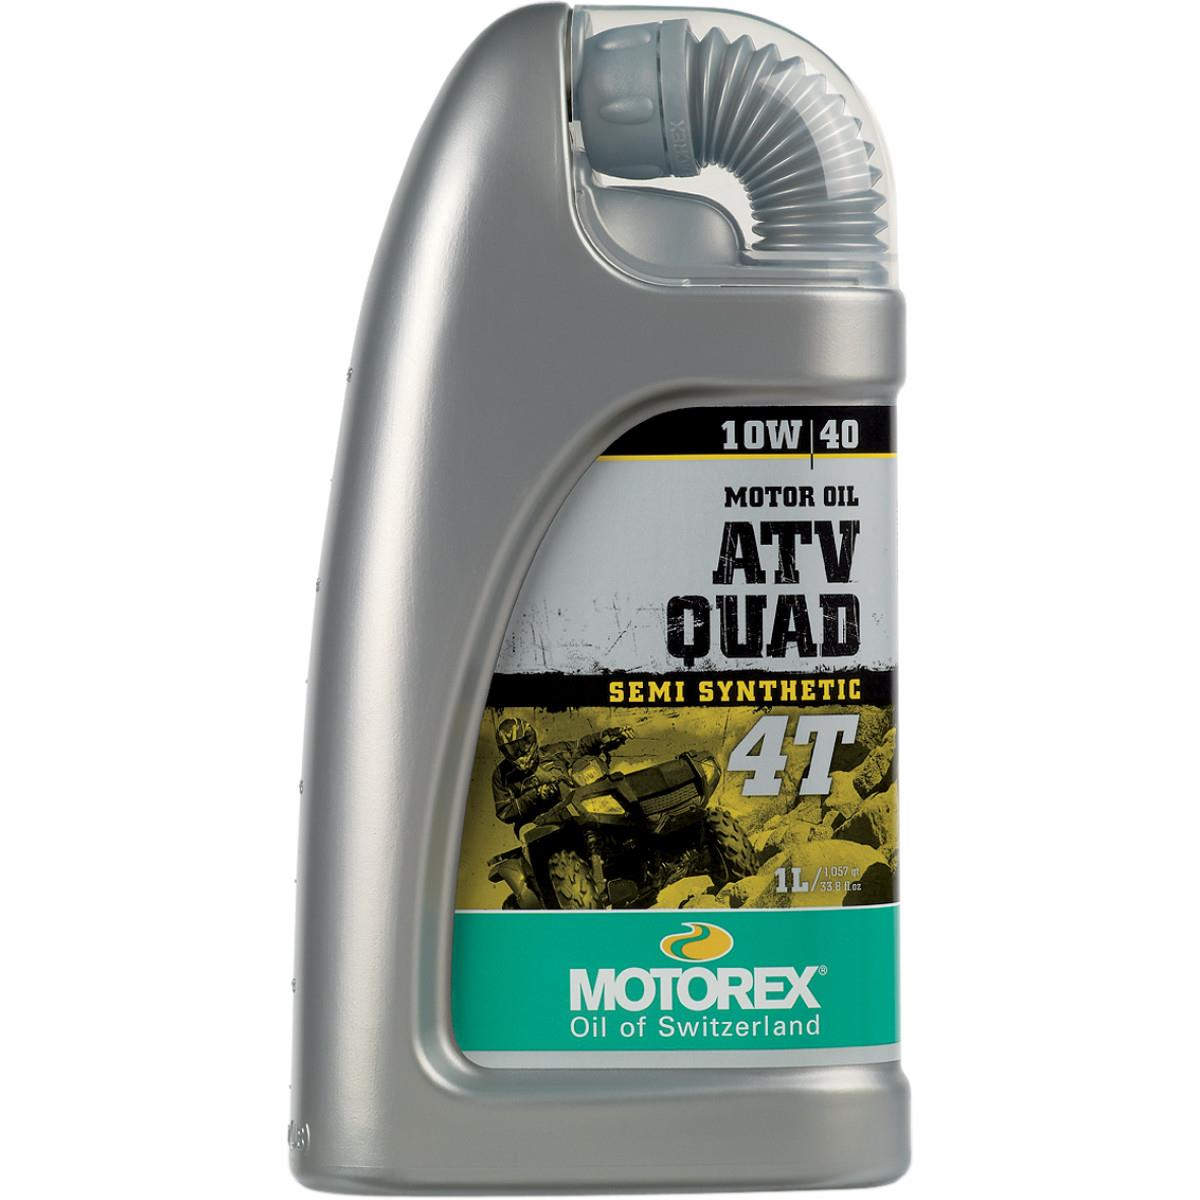 Motorex 110455 ATV/Quad 4T Oil - 10W40 - 1L.